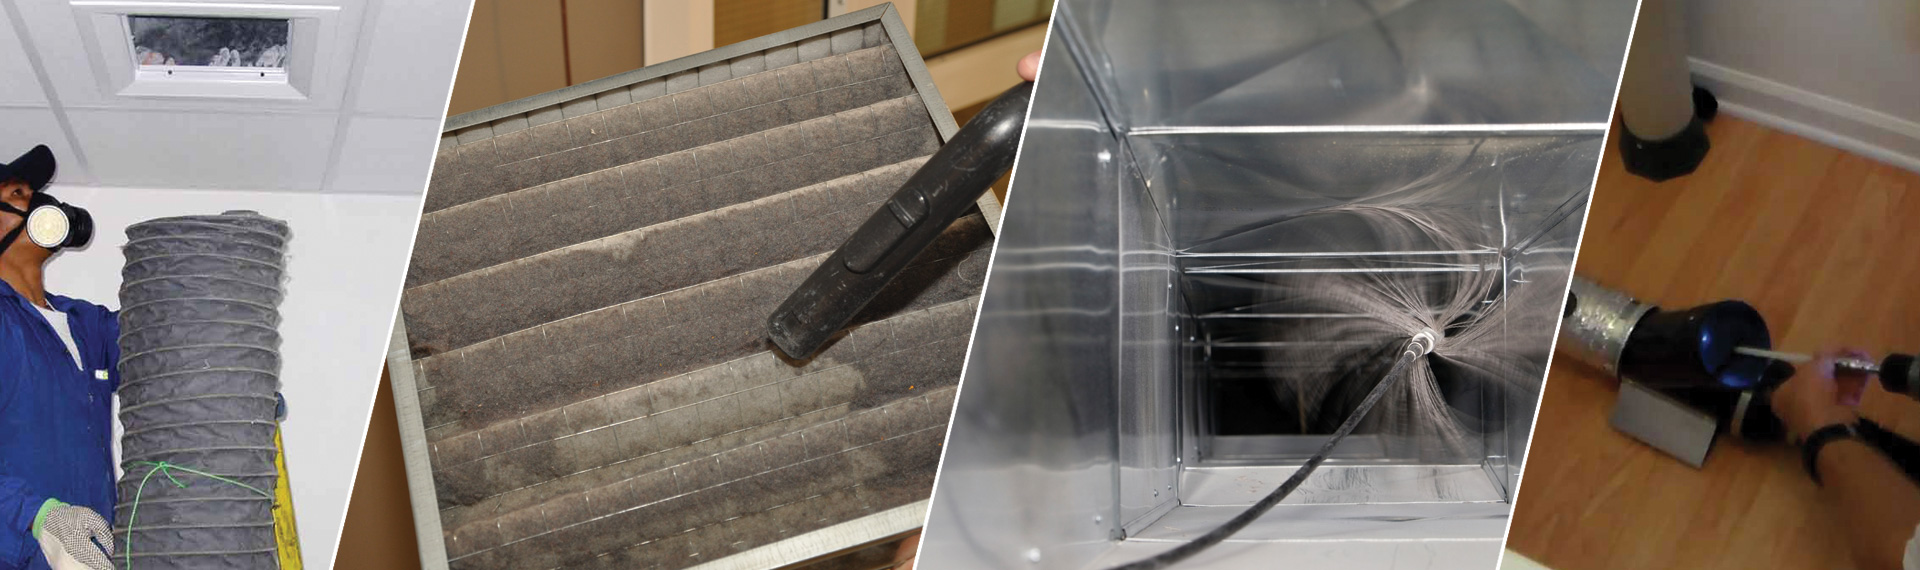 Reliable Air Duct Cleaning Hidden Hills CA